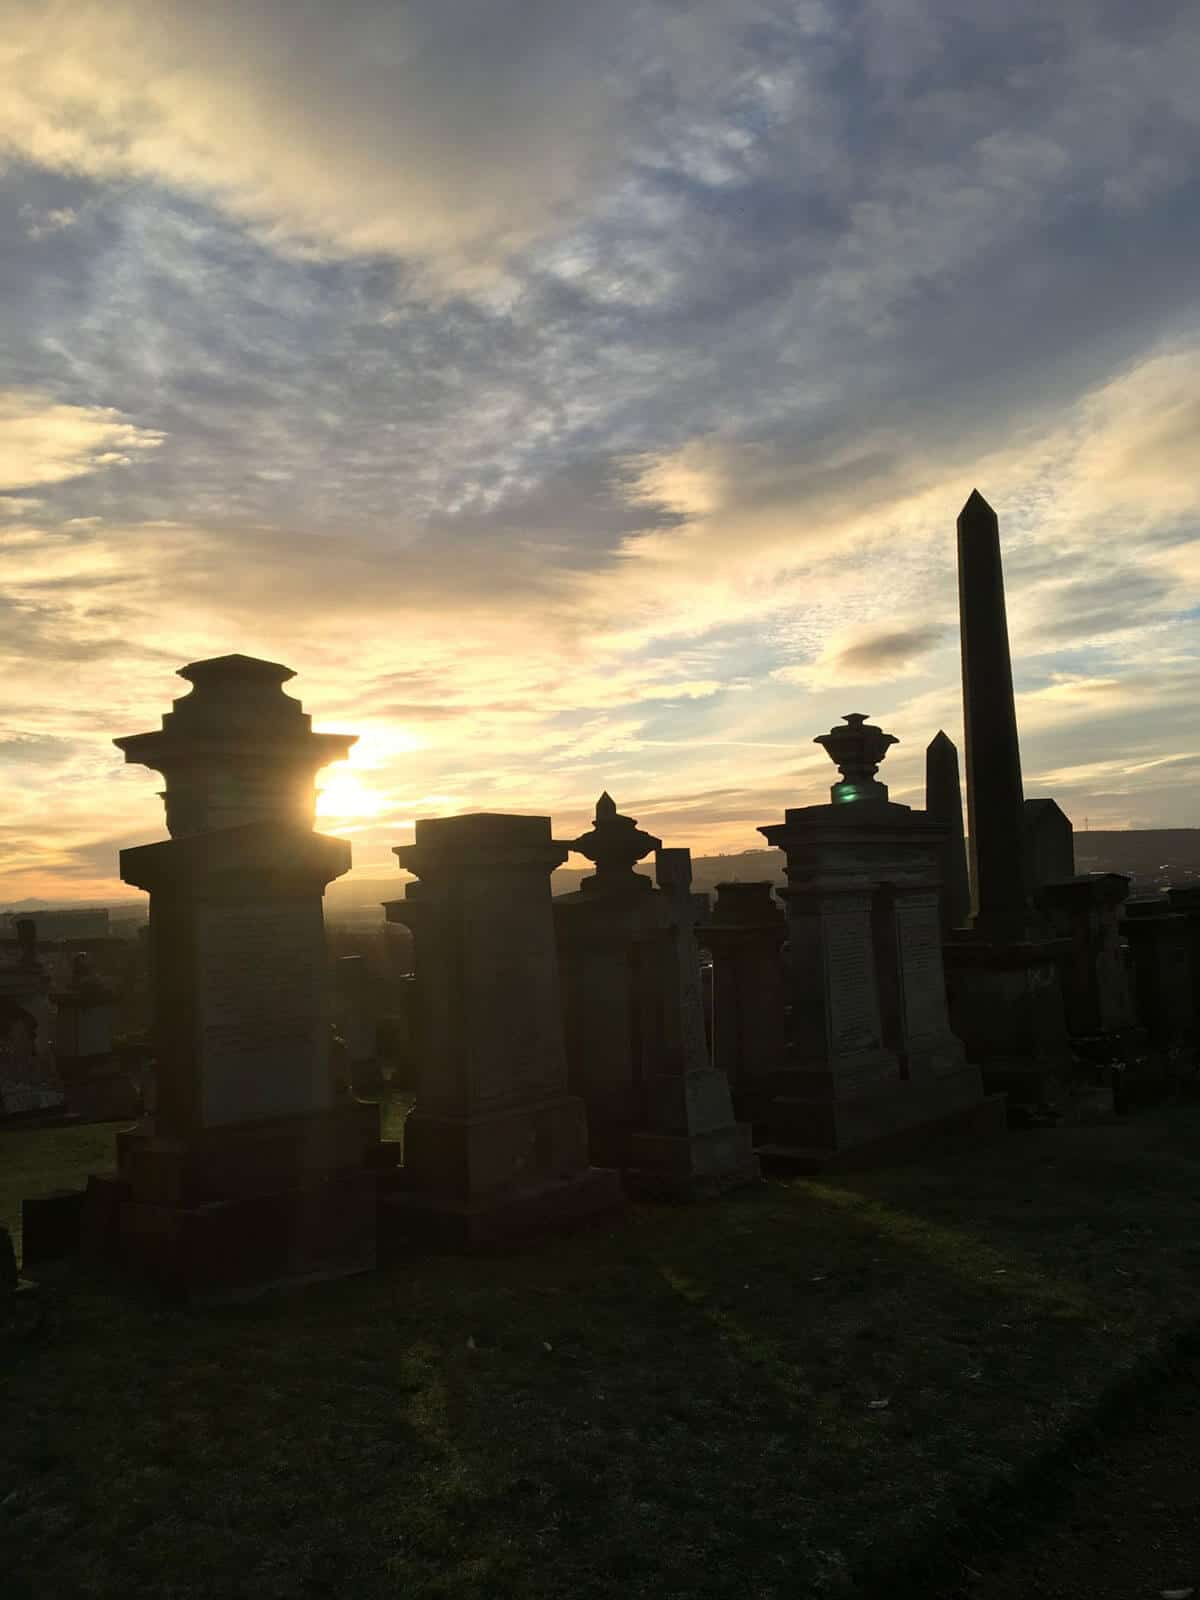 The sun rises with a calm yellow and blue cloud filled sky with the silhouette of several gravestones lined up next to each other in front of the Sunrise.